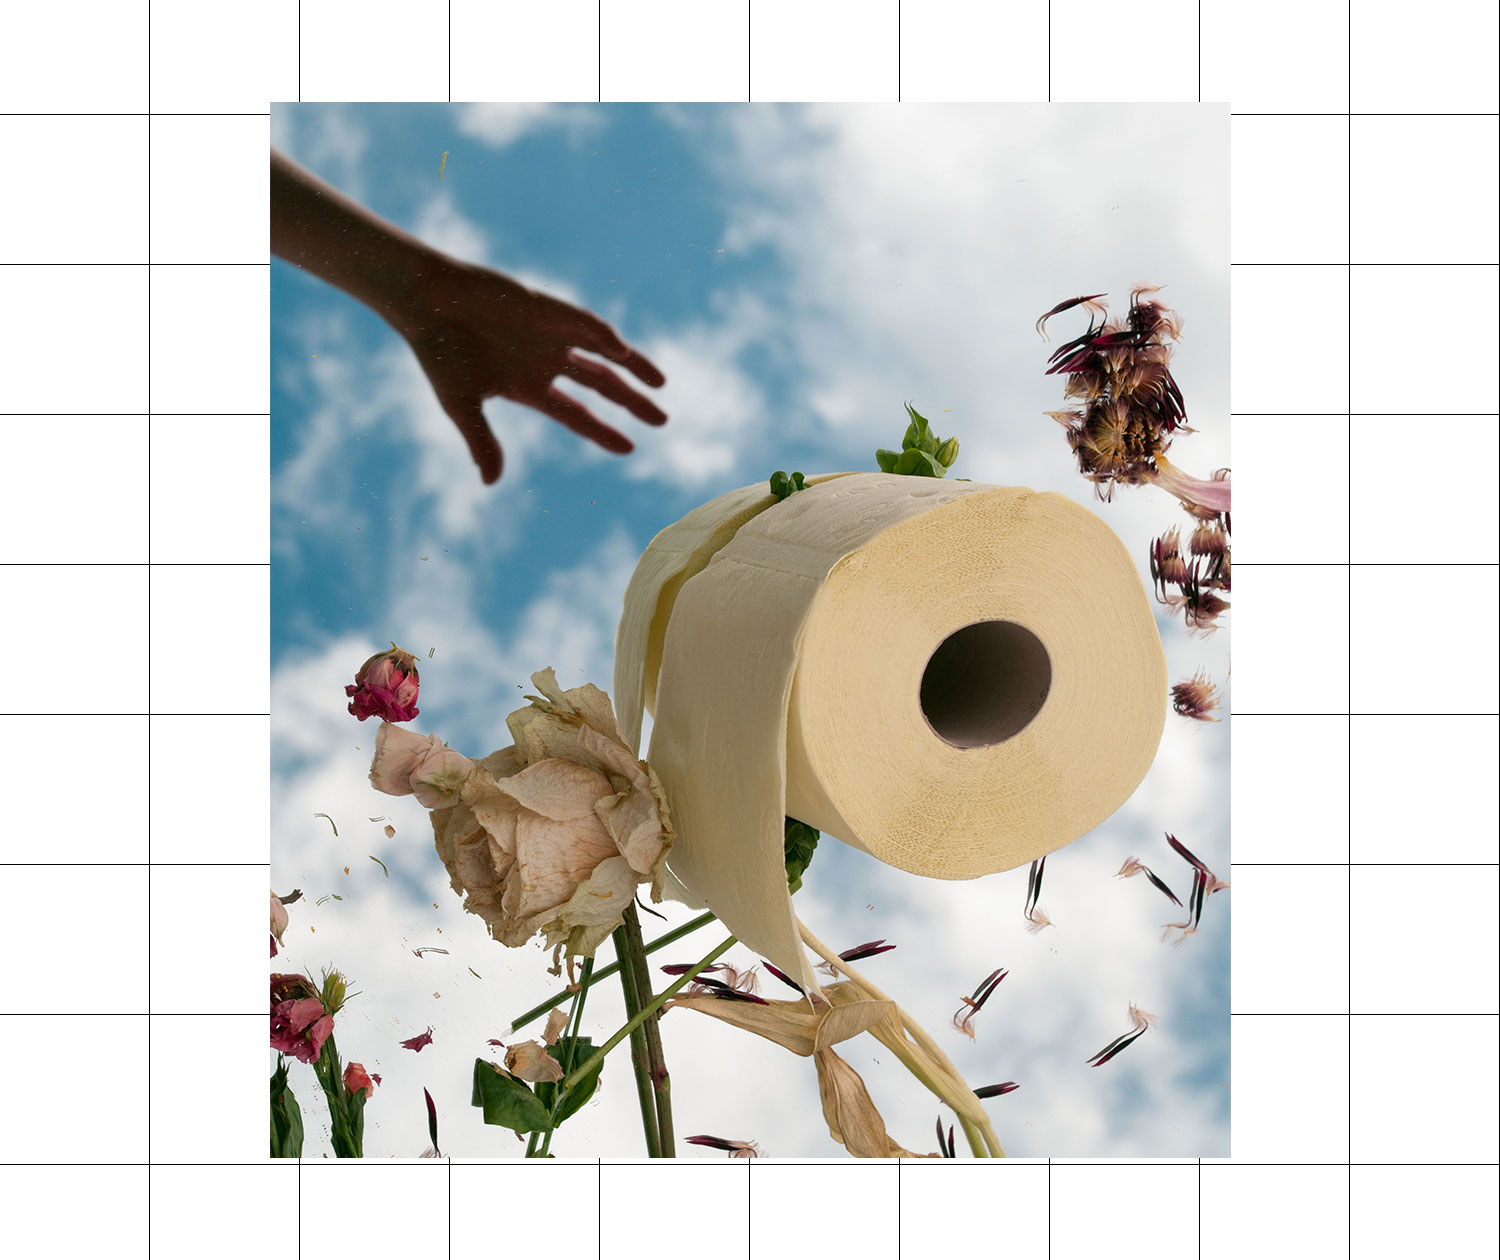 Arty montage with a hand reaching for a roll of toilet paper, based in a field of petals and leaves